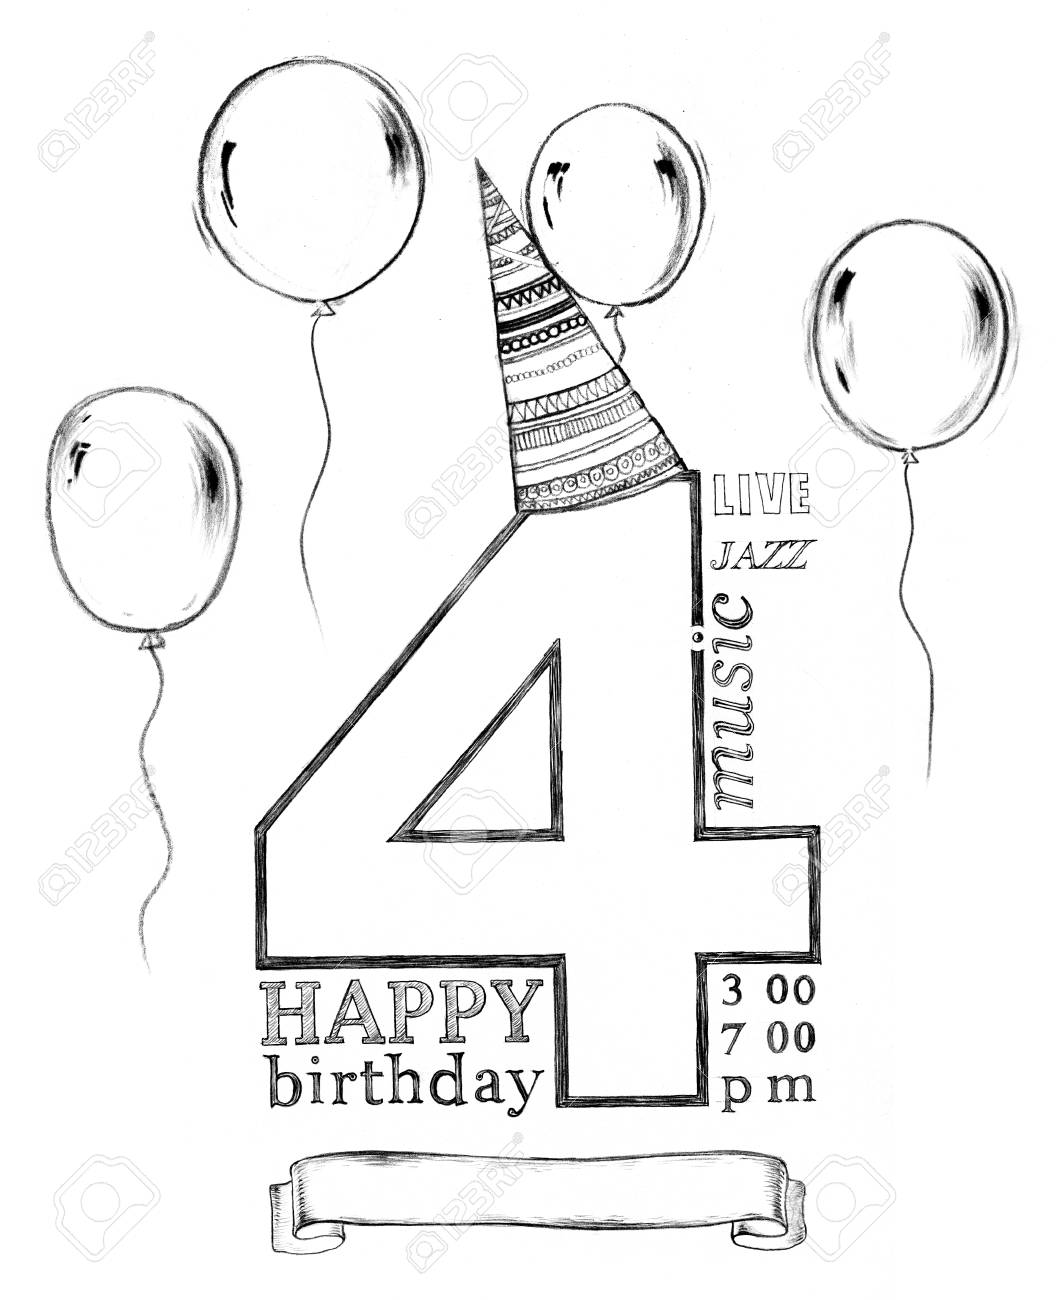 Hand drawing pencil drawing chalk on board typography happy birthday invitation with balloons isolated on white